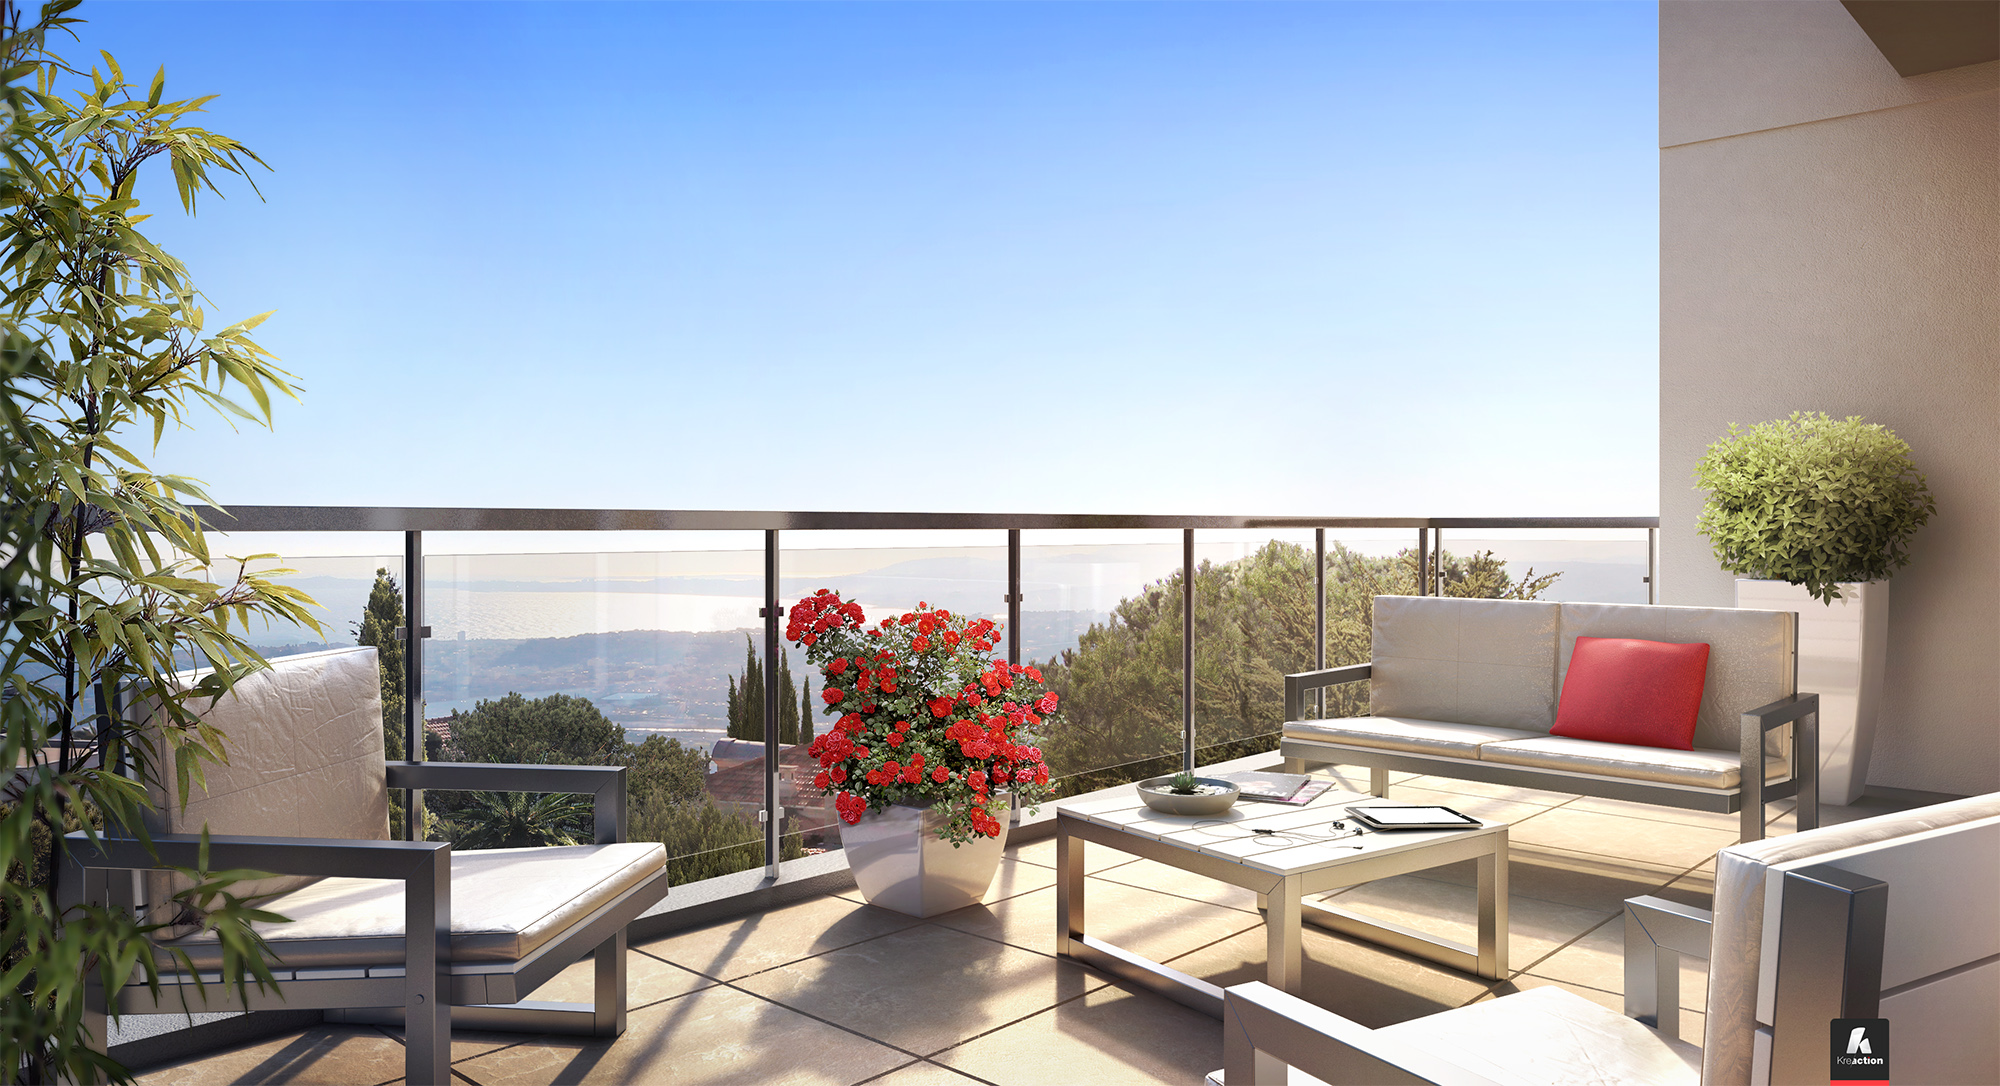 Programme Immobilier Neuf Le Domaine Des Roses Nice